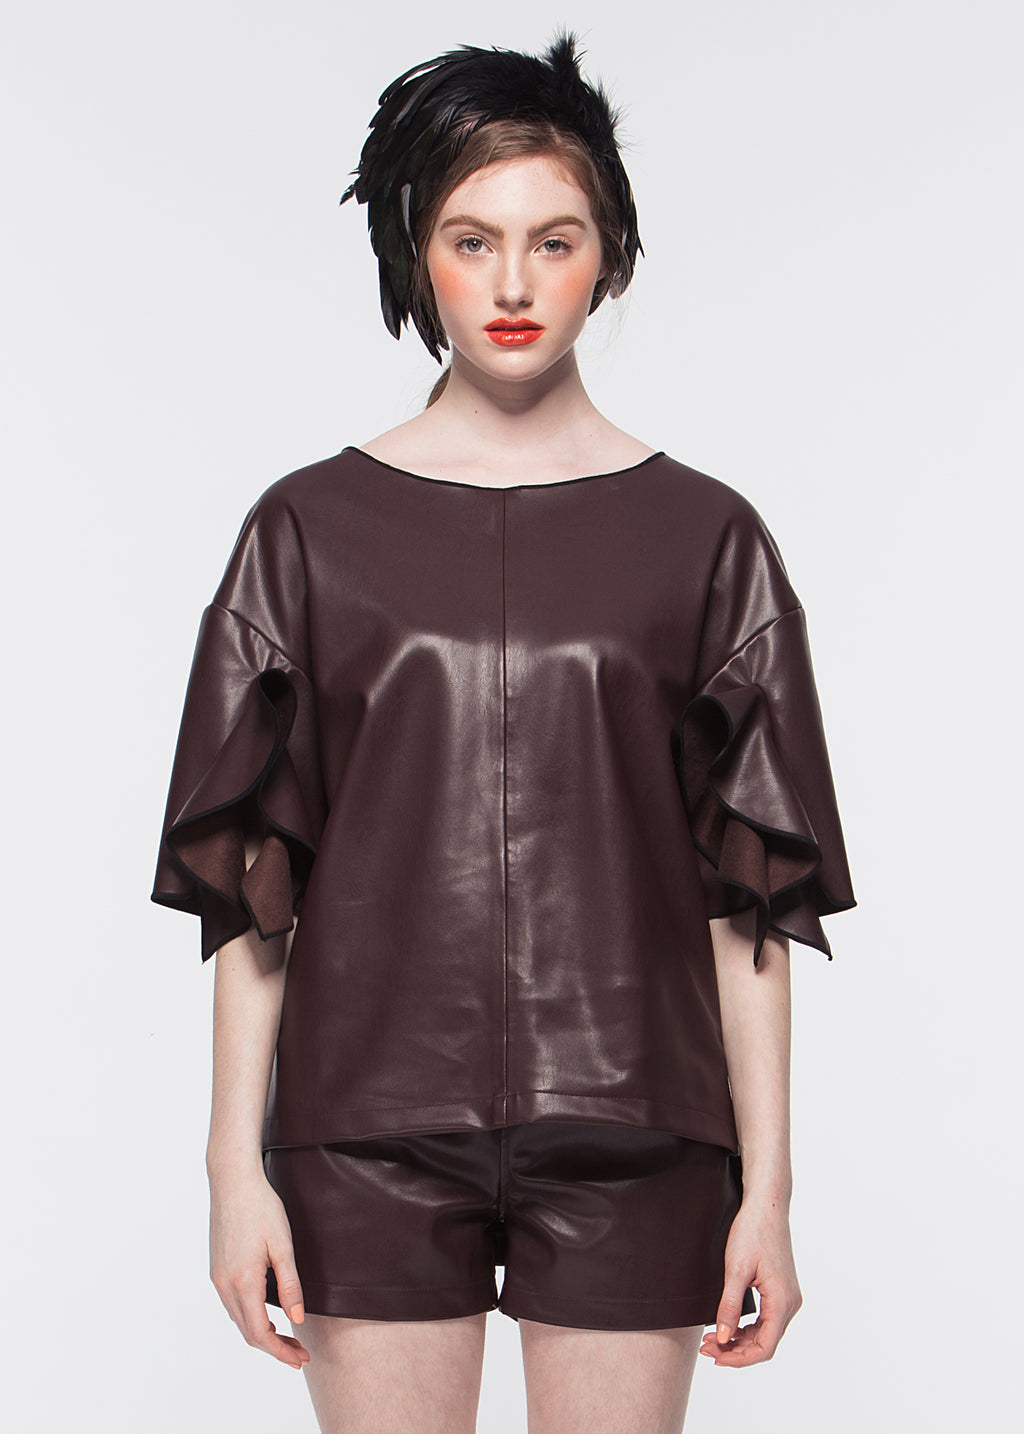 Vegan Leather With Ruffled Sleeves